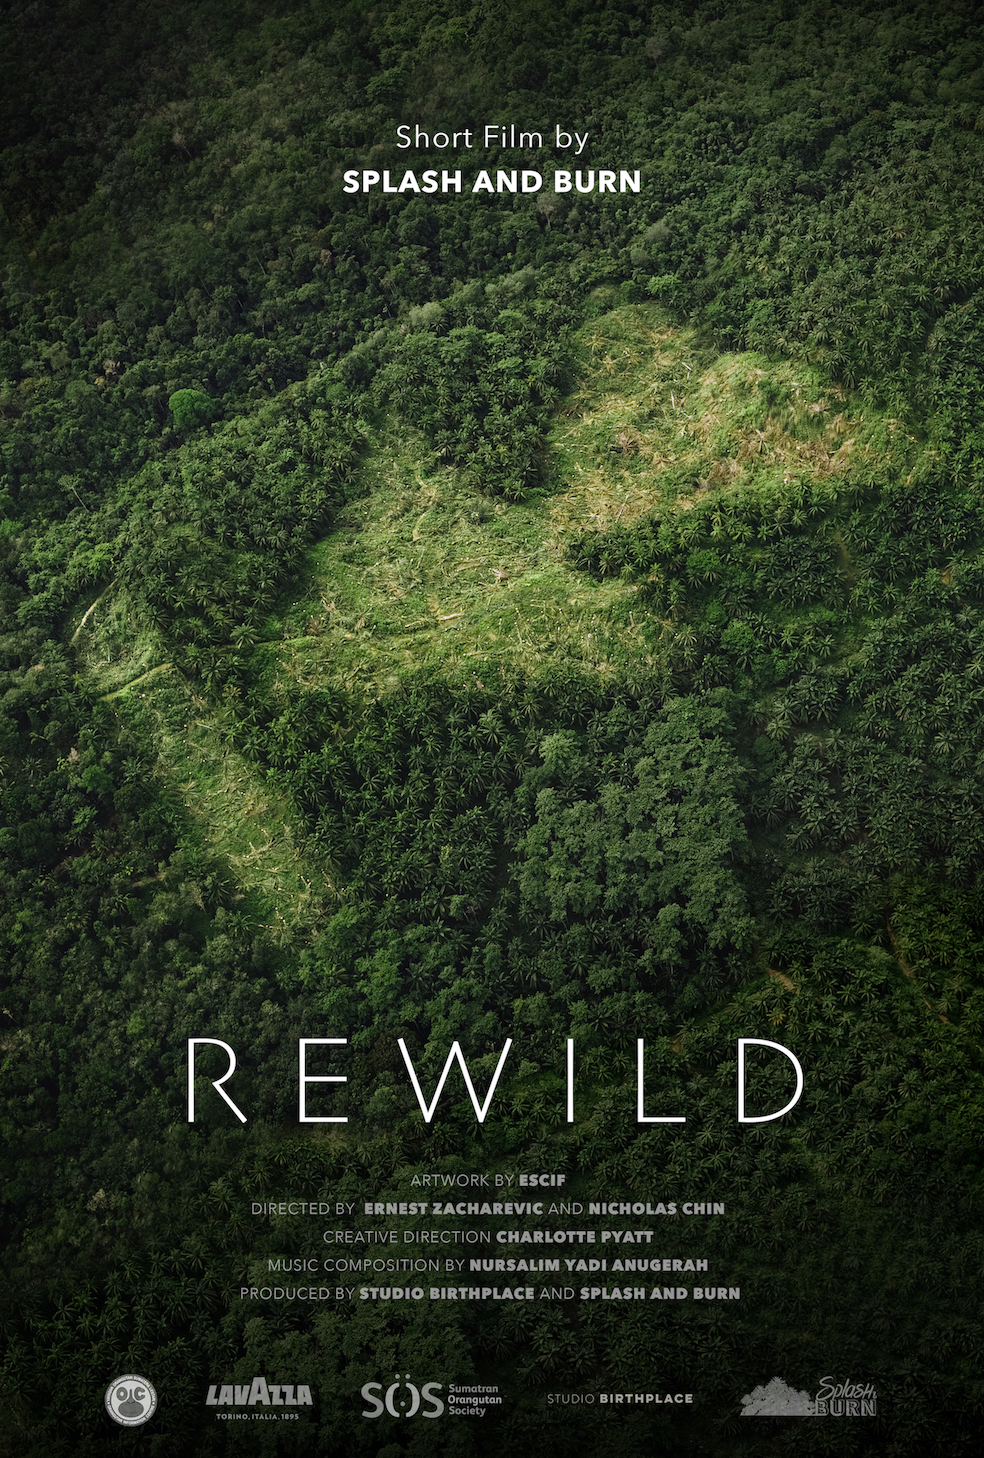 Coming Soon REWILD - REWILD is a short film by Splash and Burn and Spanish artist ESCIF. The film documents the activist art campaign within a new forest restoration site on the borders of the Leuser Ecosystem to reveal a Rewind symbol carved into a palm oil plantation in Sumatra, IndonesiaThe narrative runs in reverse, rewinding the clock on deforestation to undo the damage caused by the unsustainable production of one of the worlds most versatile commodities. Beyond the industrialisation of the land, we end at the beginning, a thriving eco system alive with wildlife. The concept mirrors the real world action of the Sumatran Orangutan Society and their partners in reclaiming land on the borders of the Leuser rainforests to rewild them with indigenous trees, expanding the boundaries of one of the most biodiverse places on earth.REWILD is produced by Studio Birthplace together with a soundtrack by Indonesian composer Nursalim Yadi Anugerah, known for his interesting approach to instrumentation and composition as an ethnomusicologist*